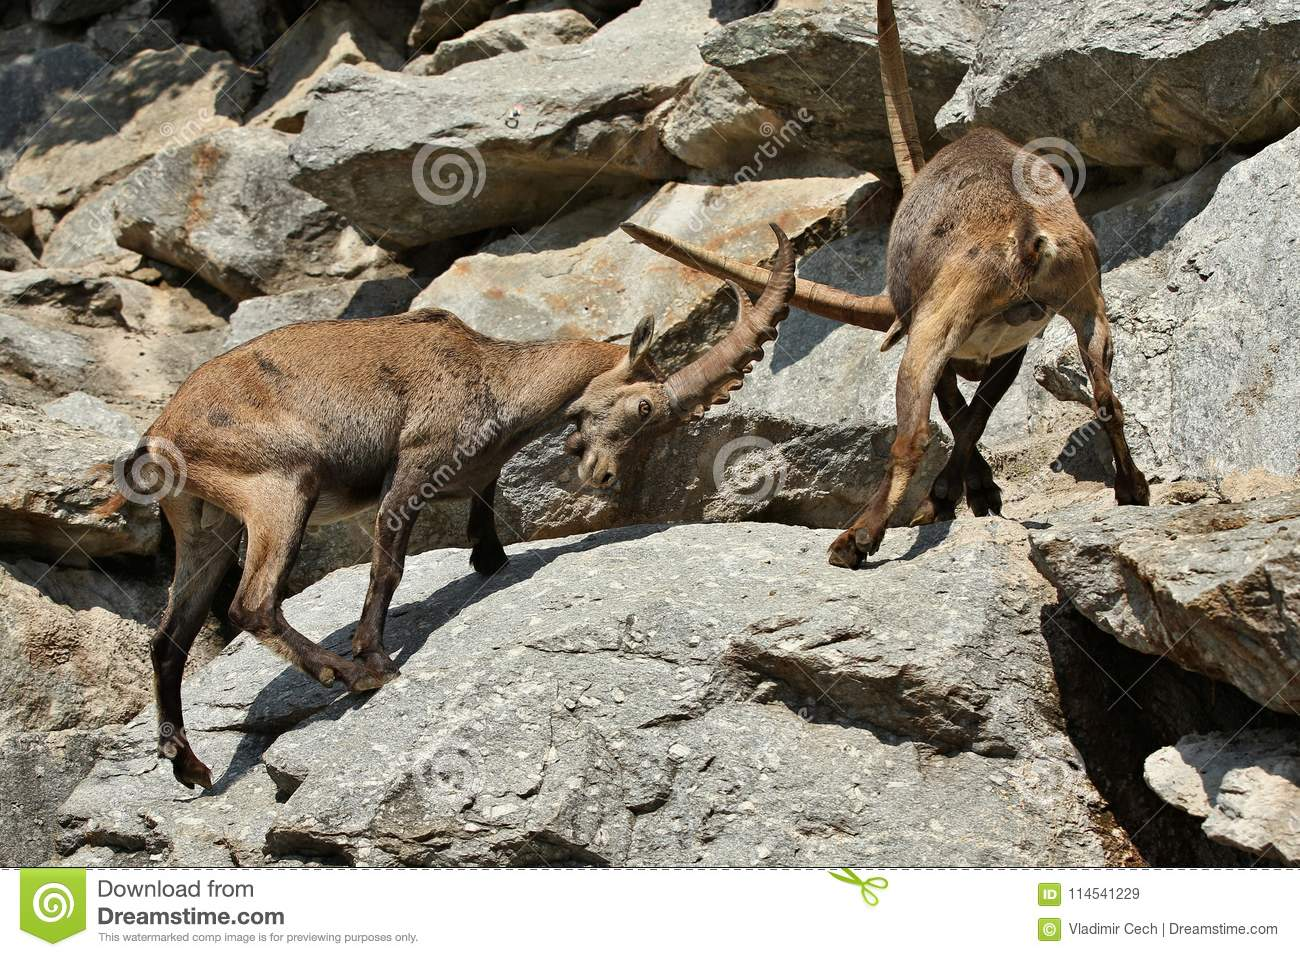 Ibex fight in the rocky mountain area.